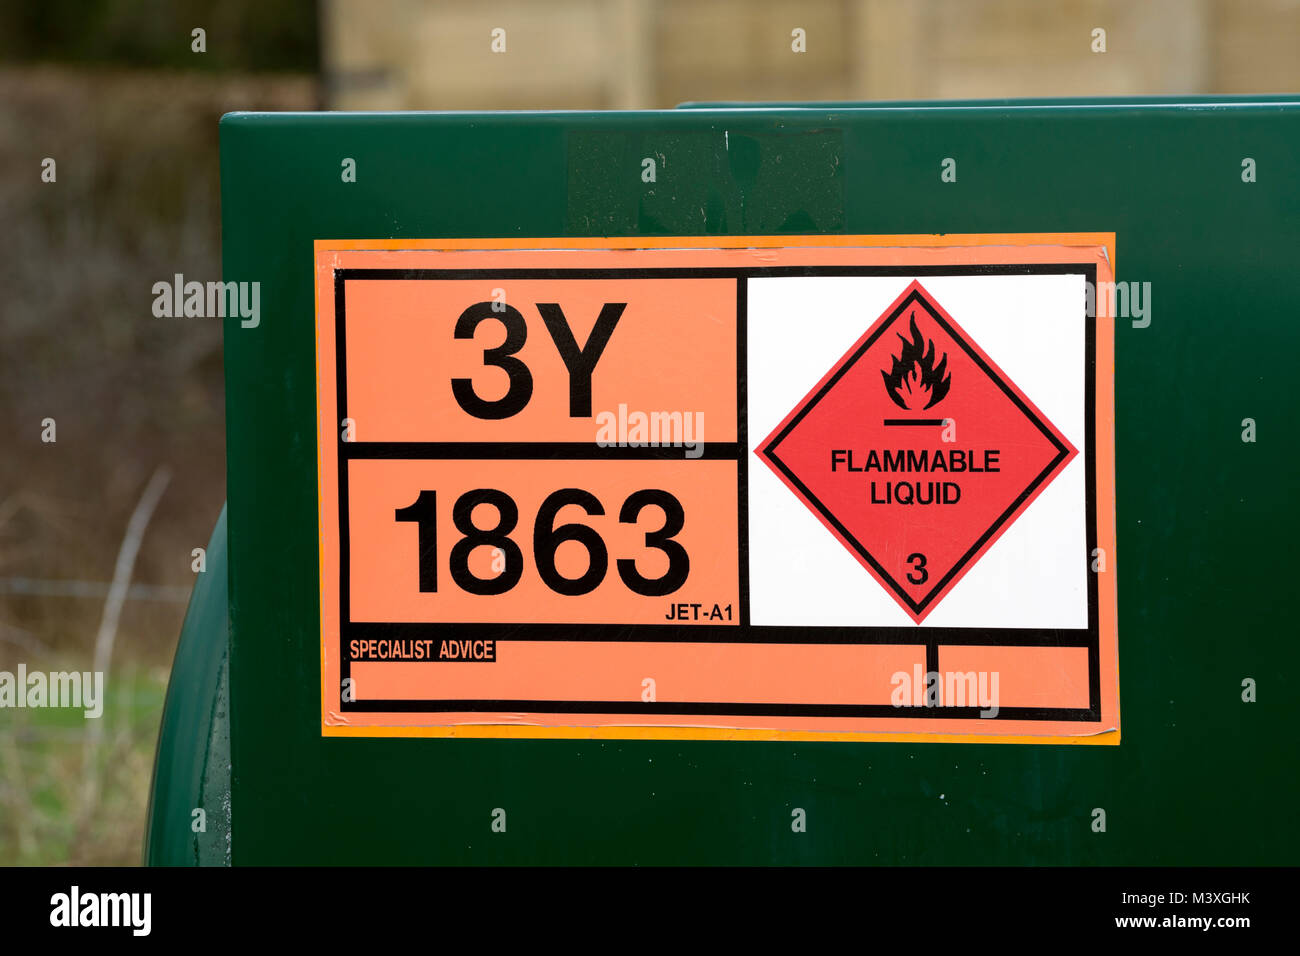 Flammable liquid sign on an aircraft fuel storage tank, Wellesbourne Airfield, Warwickshire, UK - Stock Image